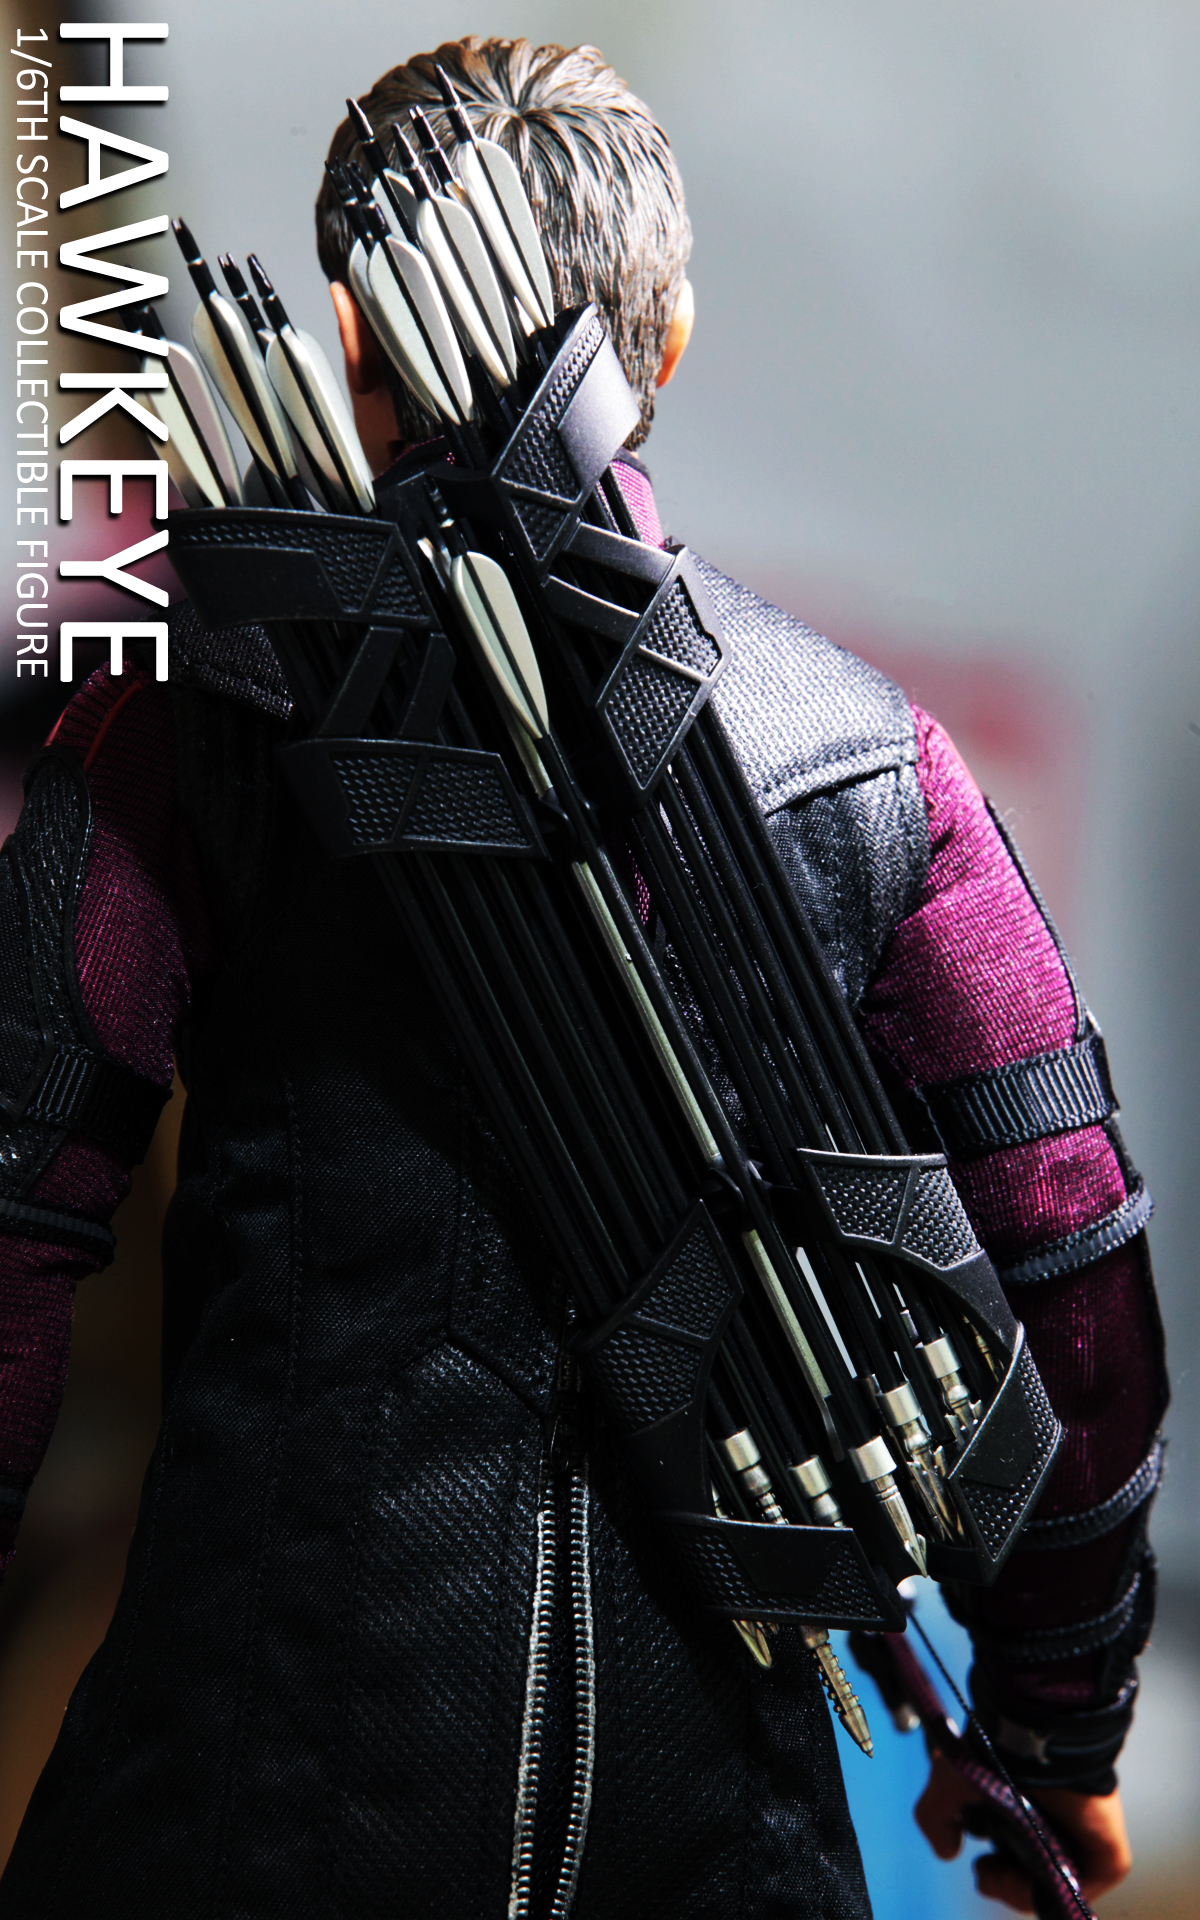 hottoys-avengers-age-of-ultron-hawkeye-picture14